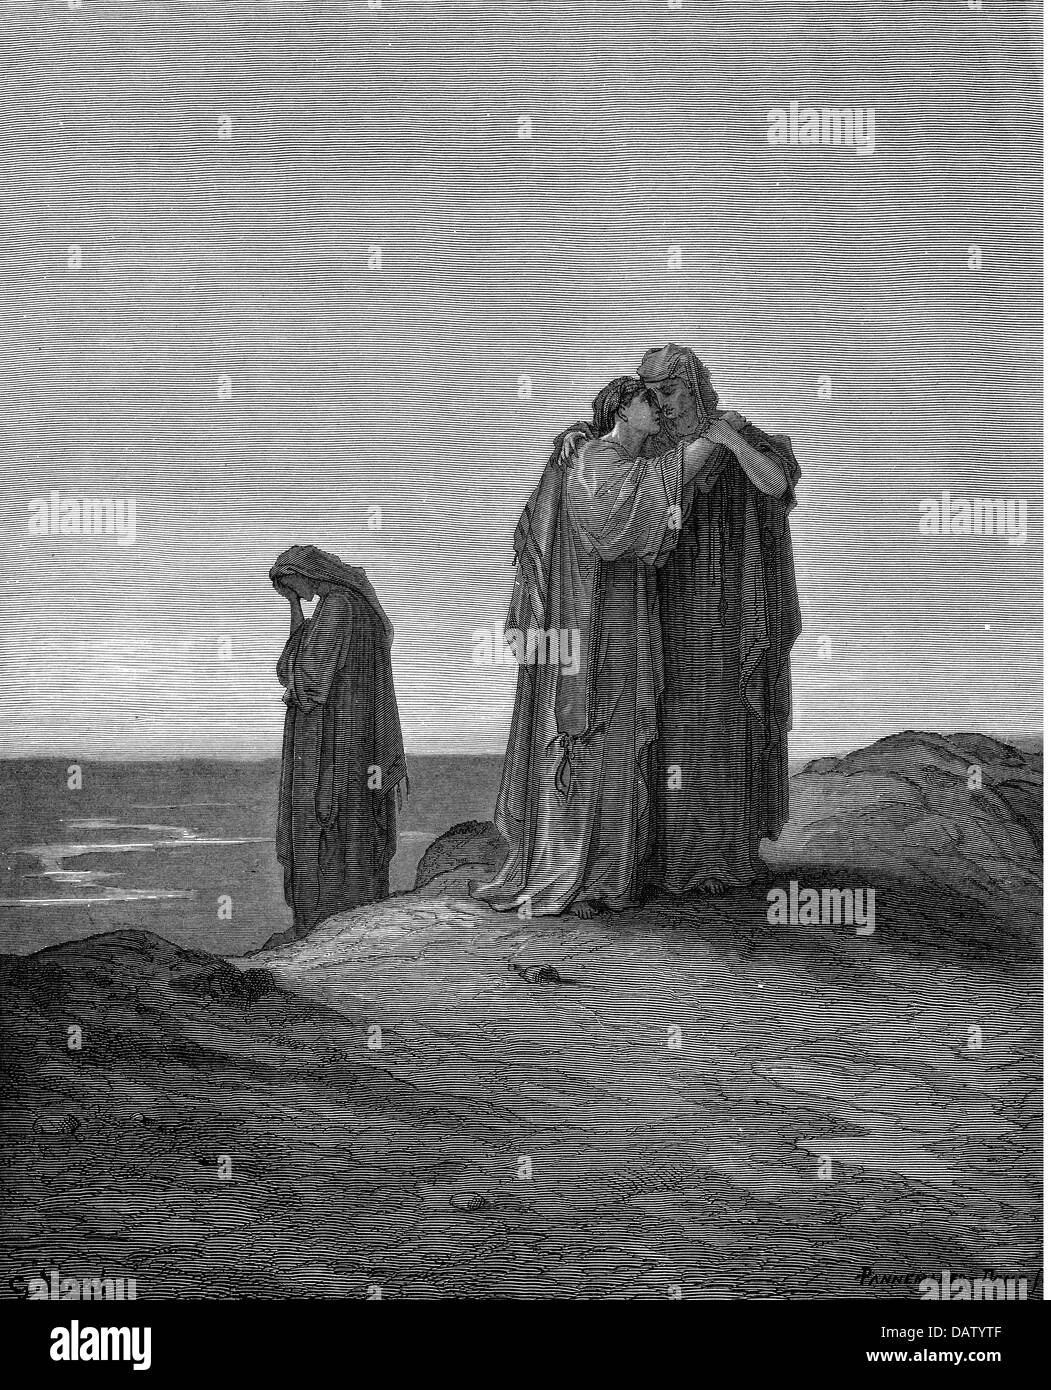 religion, biblical scenes, 'Naomi and the strings', wood engraving to the Bible by Gustave Doré, 1866, - Stock Image